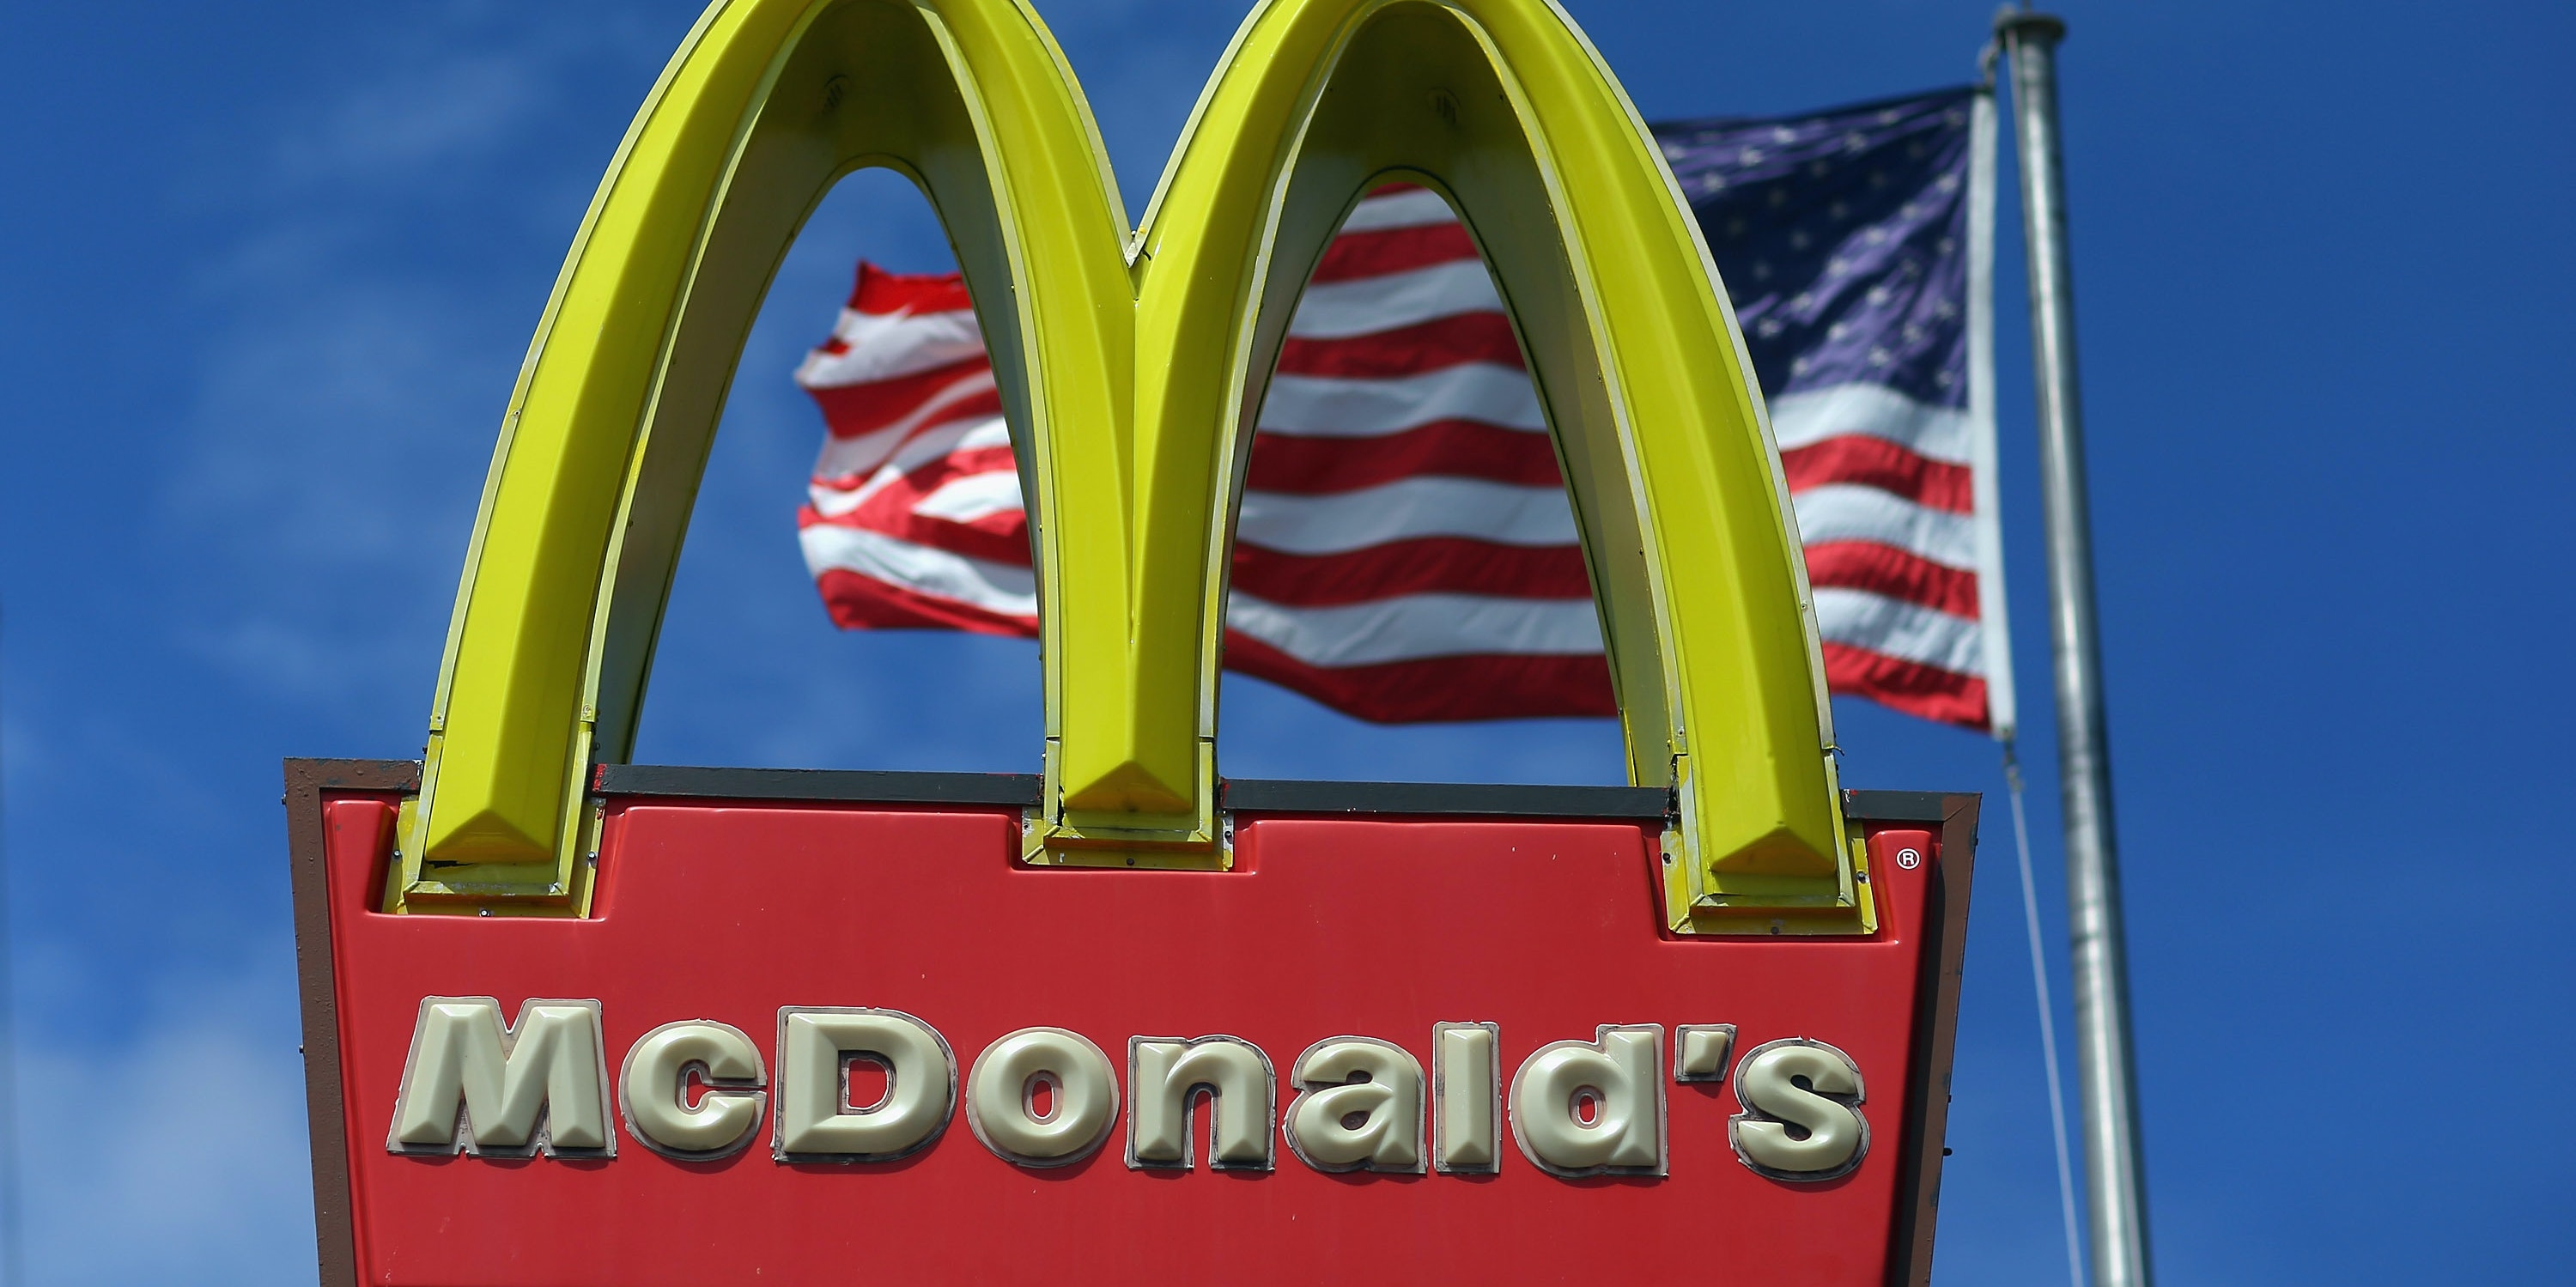 When Will McDonald's Start Serving Beer in the United States?